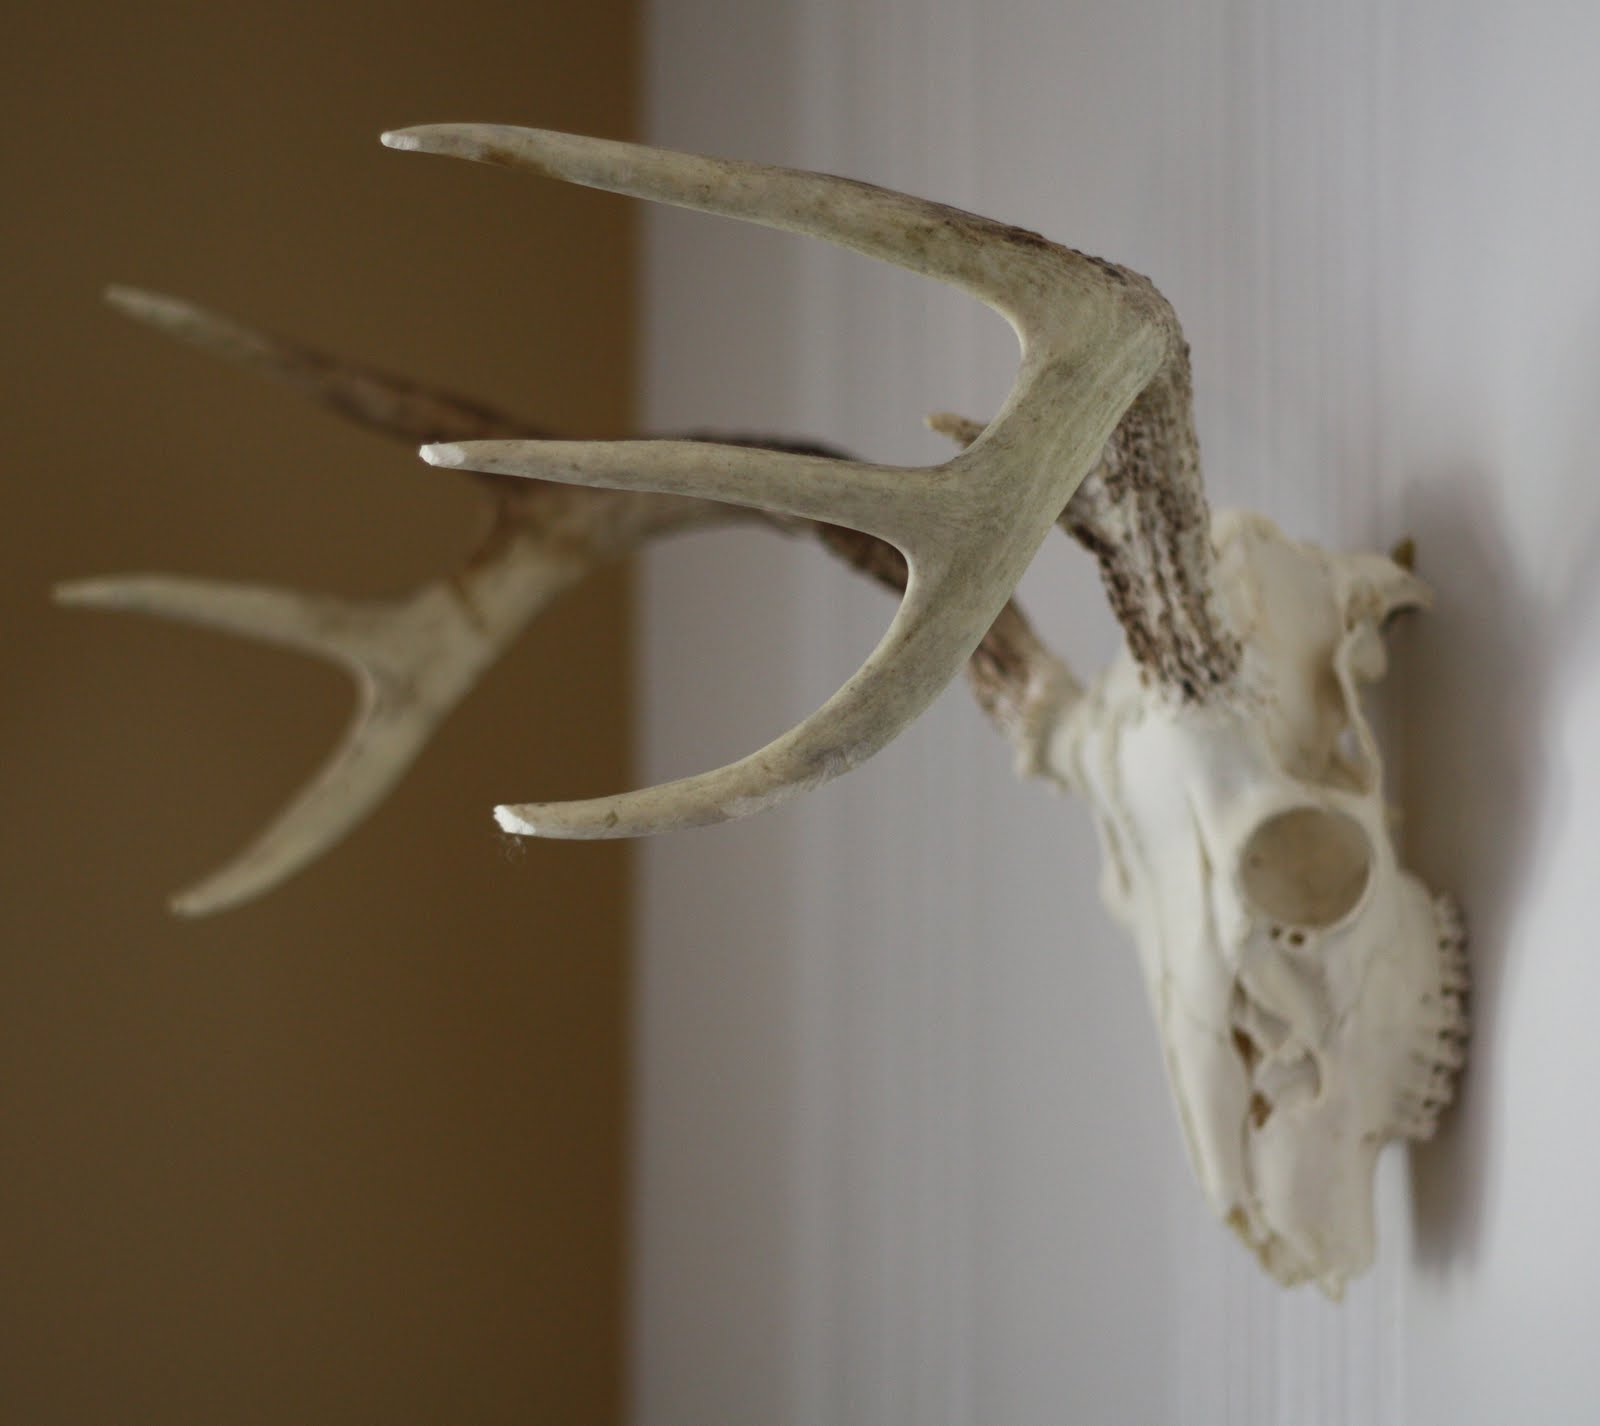 17 apart how to clean and wall mount deer antlers we decided wed like to keep them in their natural form and wanted to wall mount them in a small space in our living room that needed a little updating amipublicfo Image collections